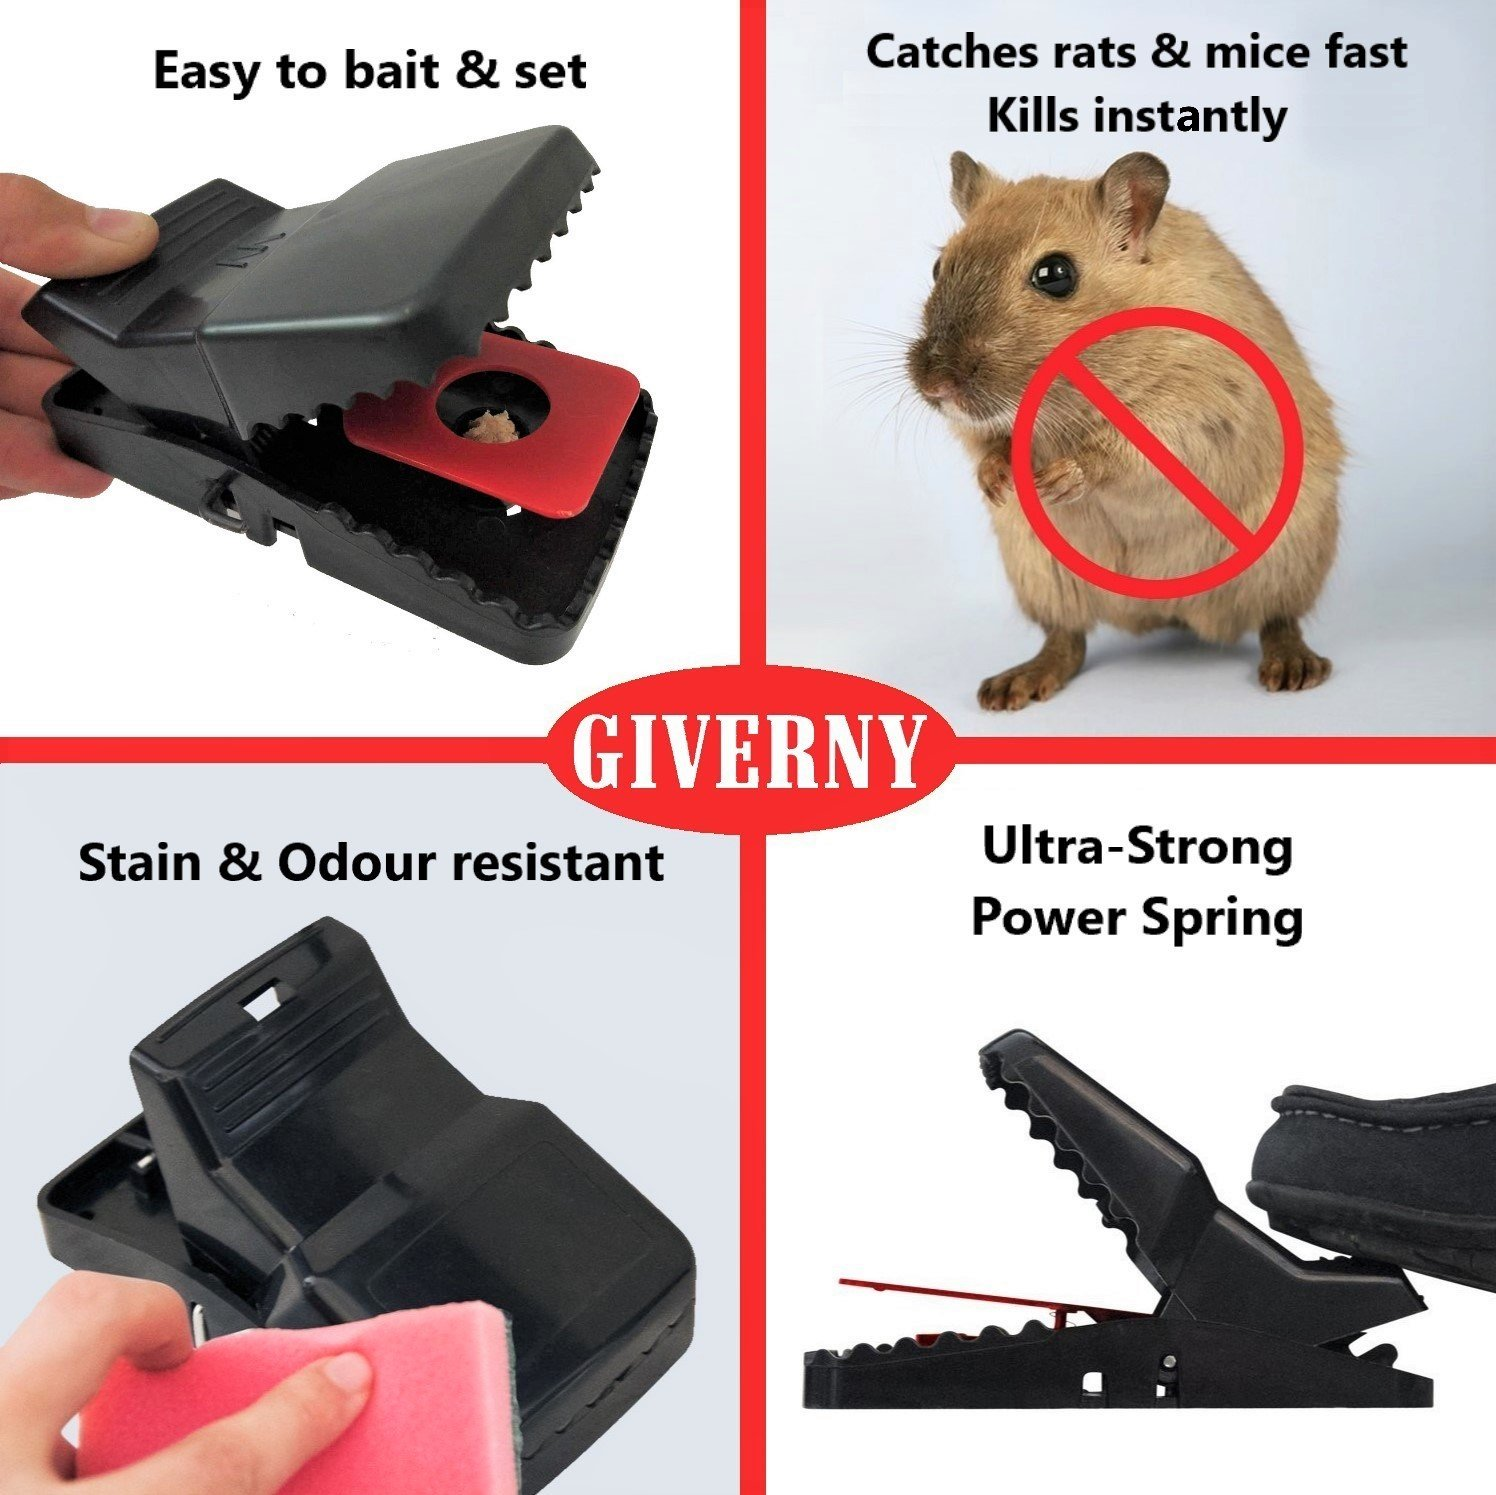 GIVERNY Rat Trap & Mouse Trap (6 Pack) Catch Rodents Fast, Easy & Safe to  use, Quick & Effective Rat Killer, Kill Instantly, Humane Death - BONUS